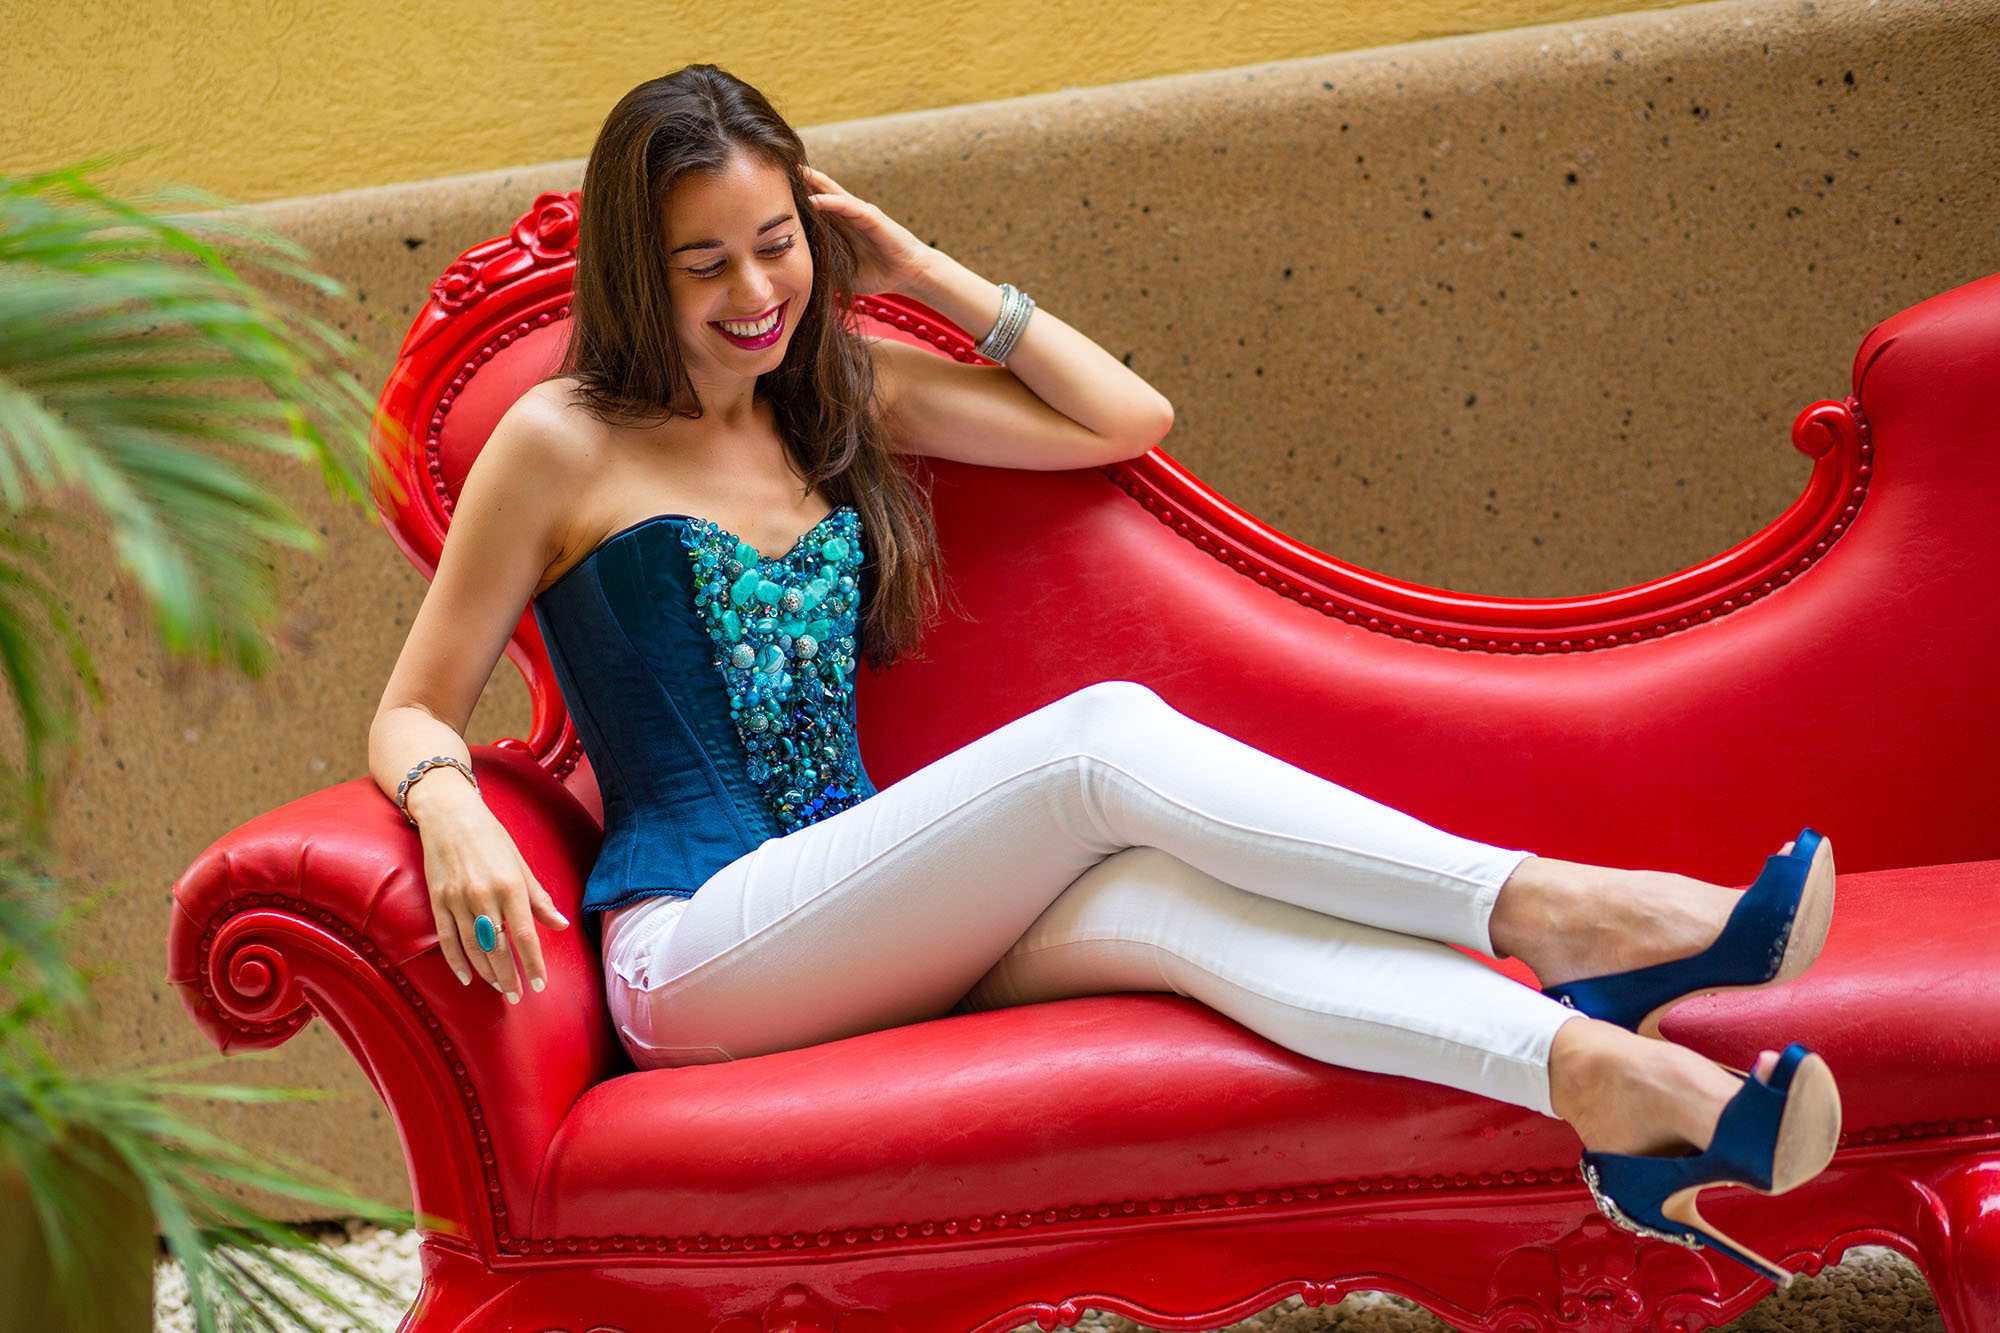 Stella in blue corset on red couch